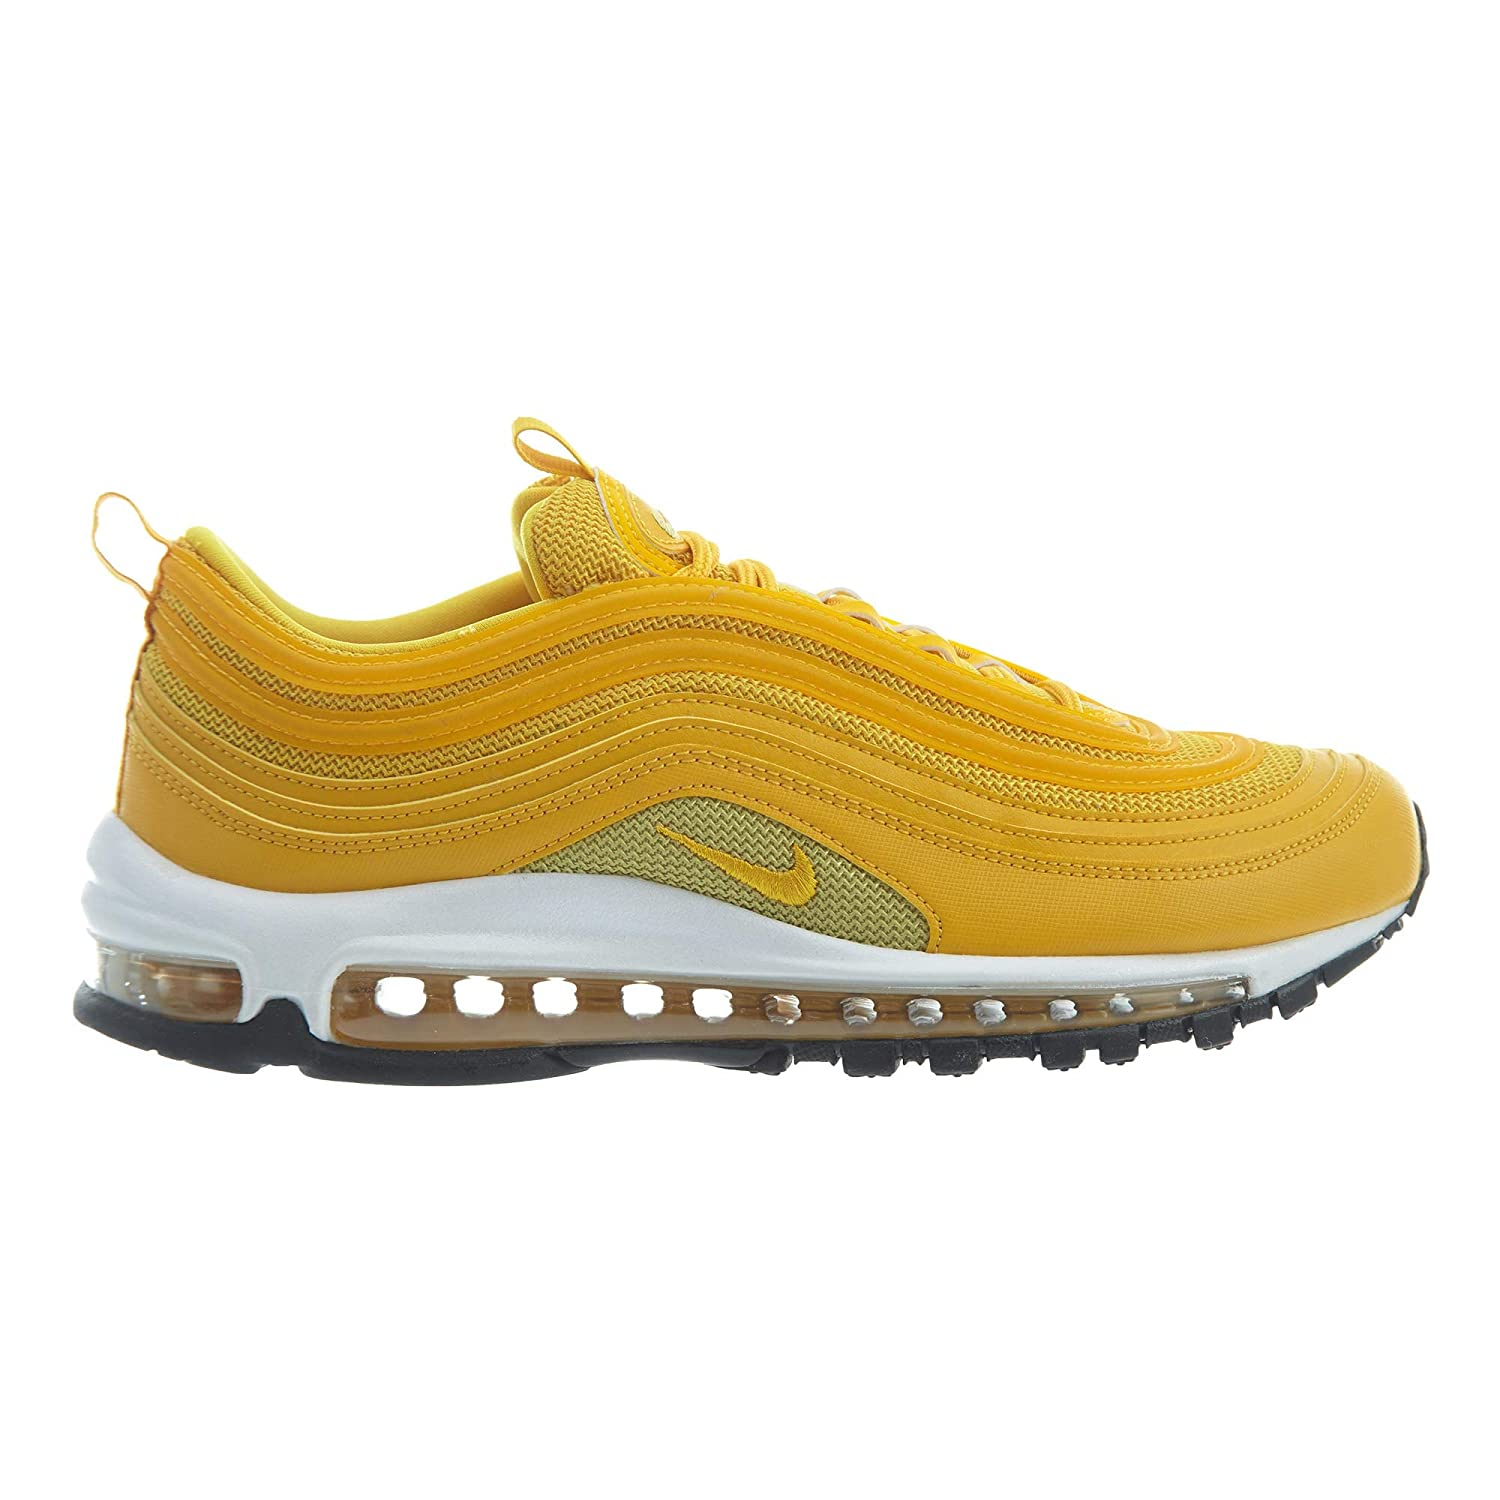 f16b48a9b8c88 Nike W Air Max 97 Womens 921733-701: Amazon.co.uk: Shoes & Bags